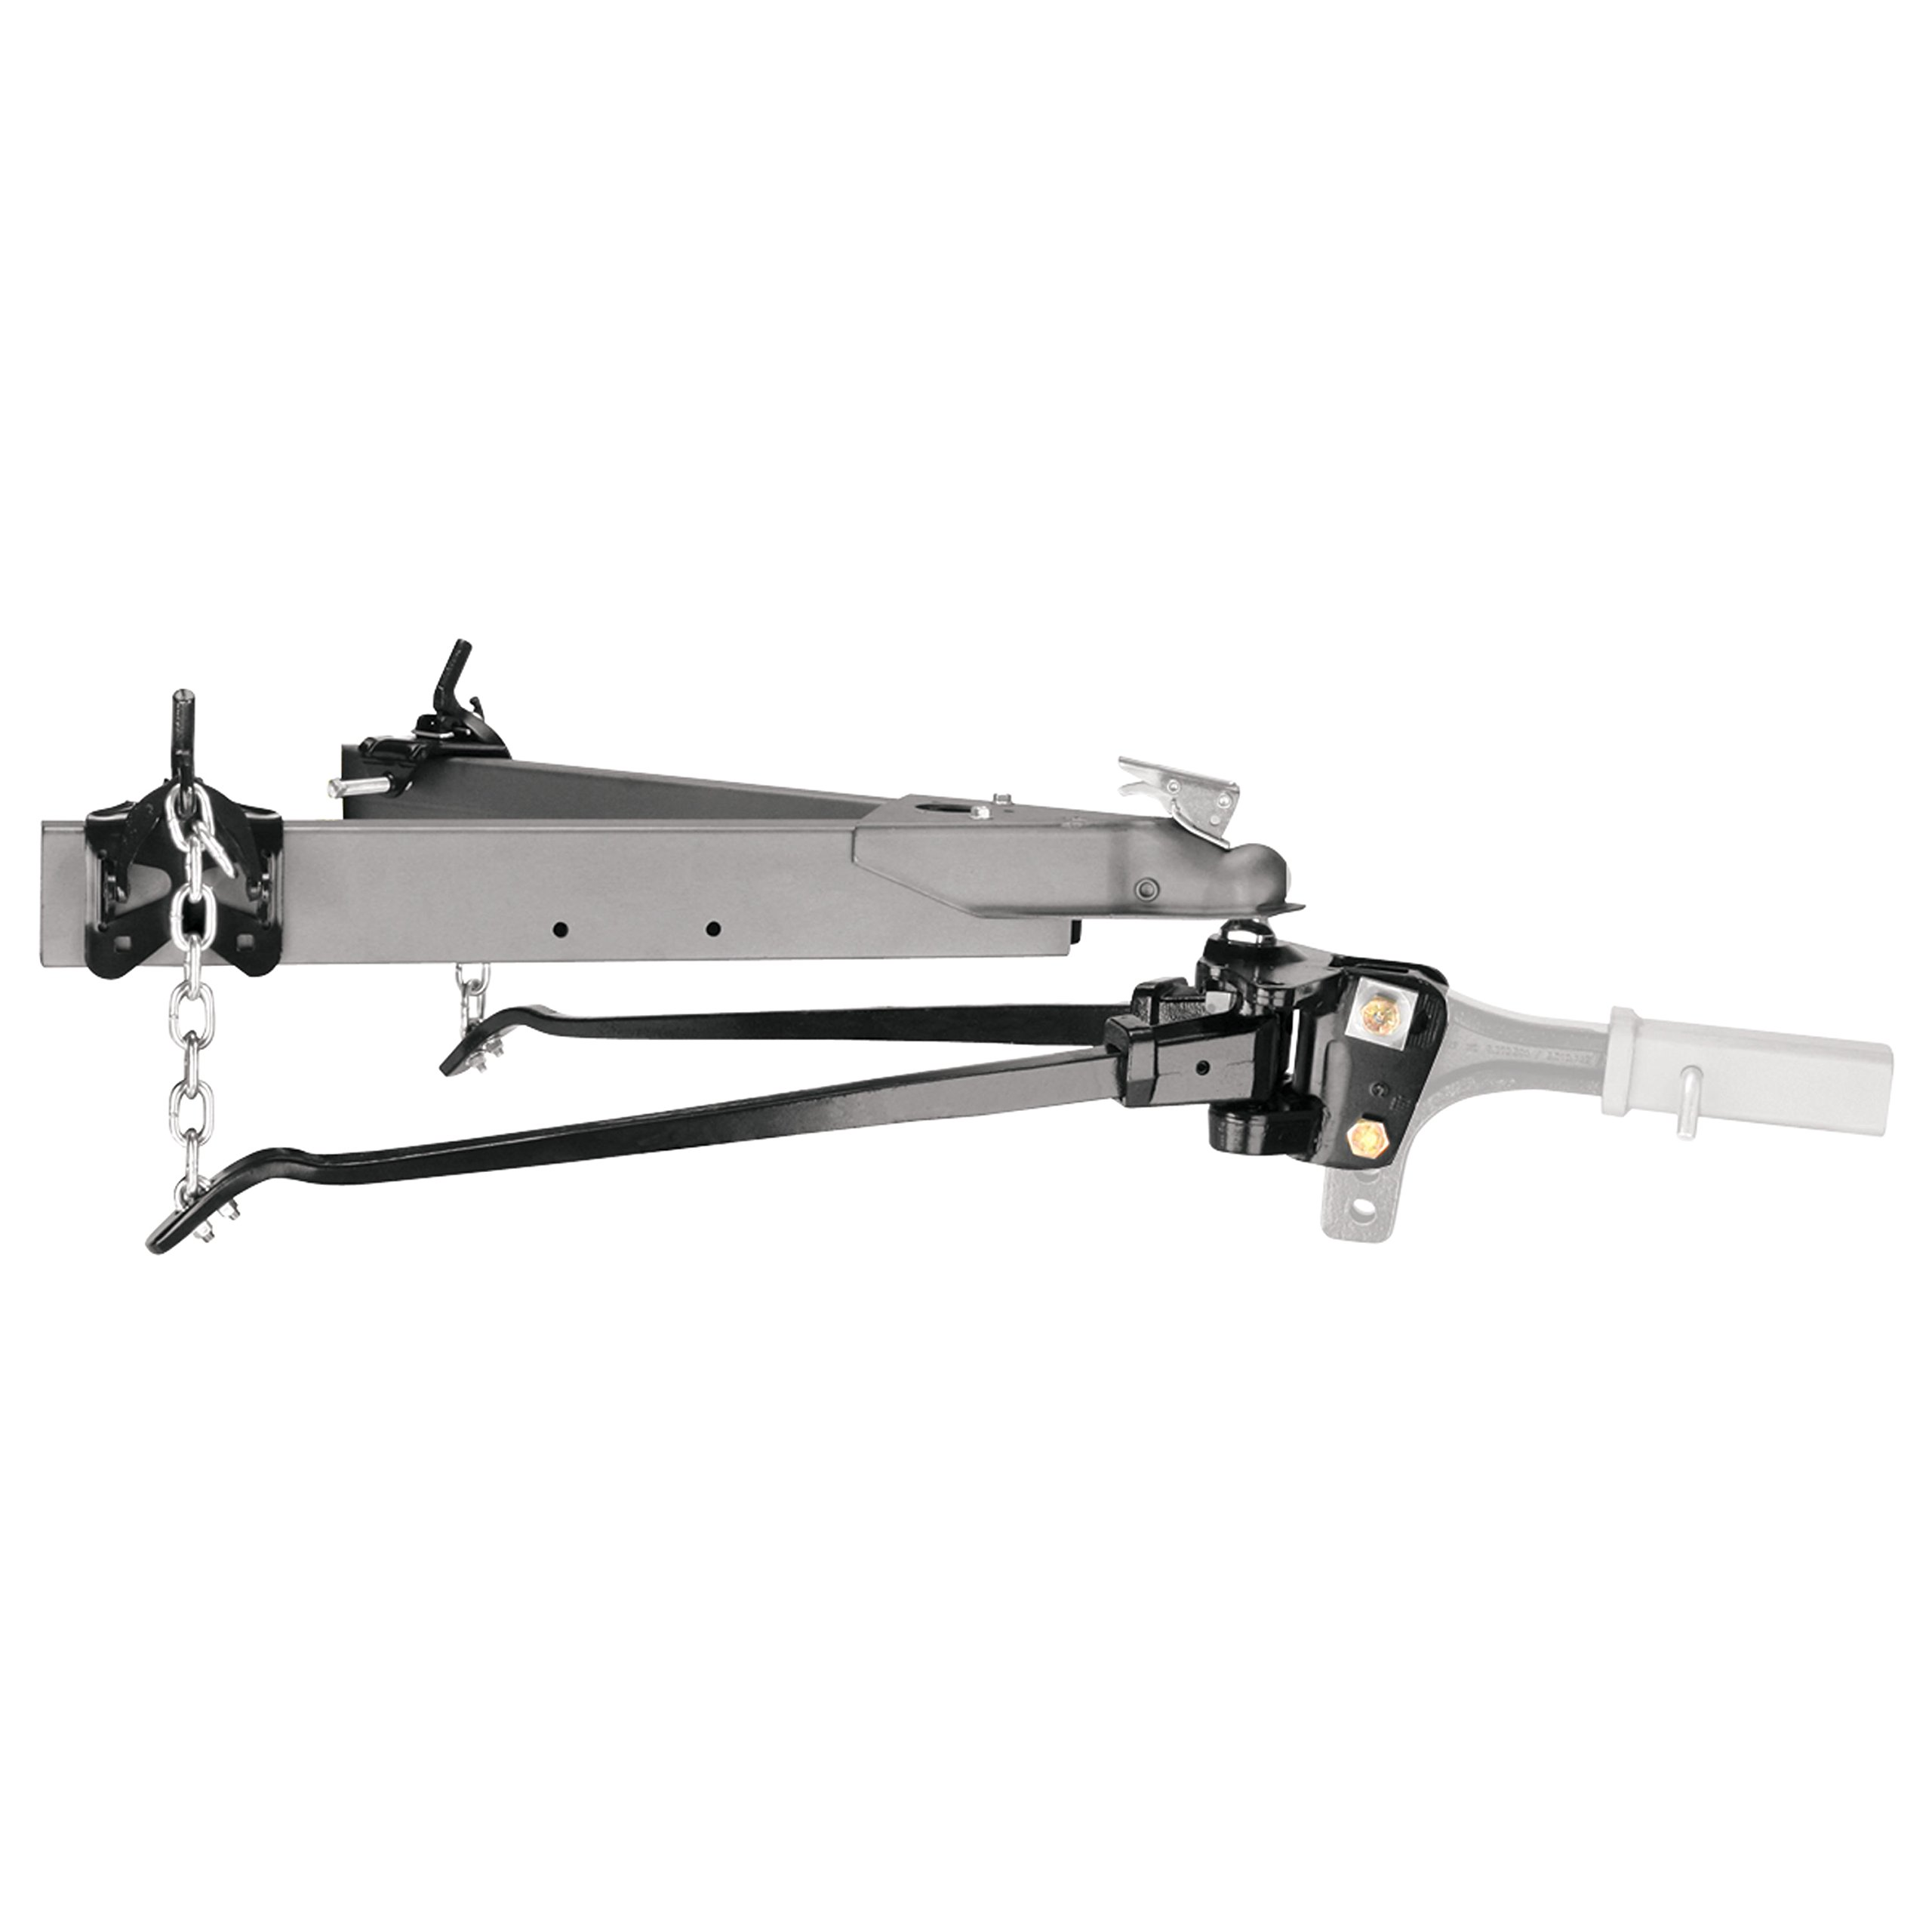 Reese 66022 High-Performance Trunnion Weight Distribution Kit-12000/1200 lbs. (GTW/TW)